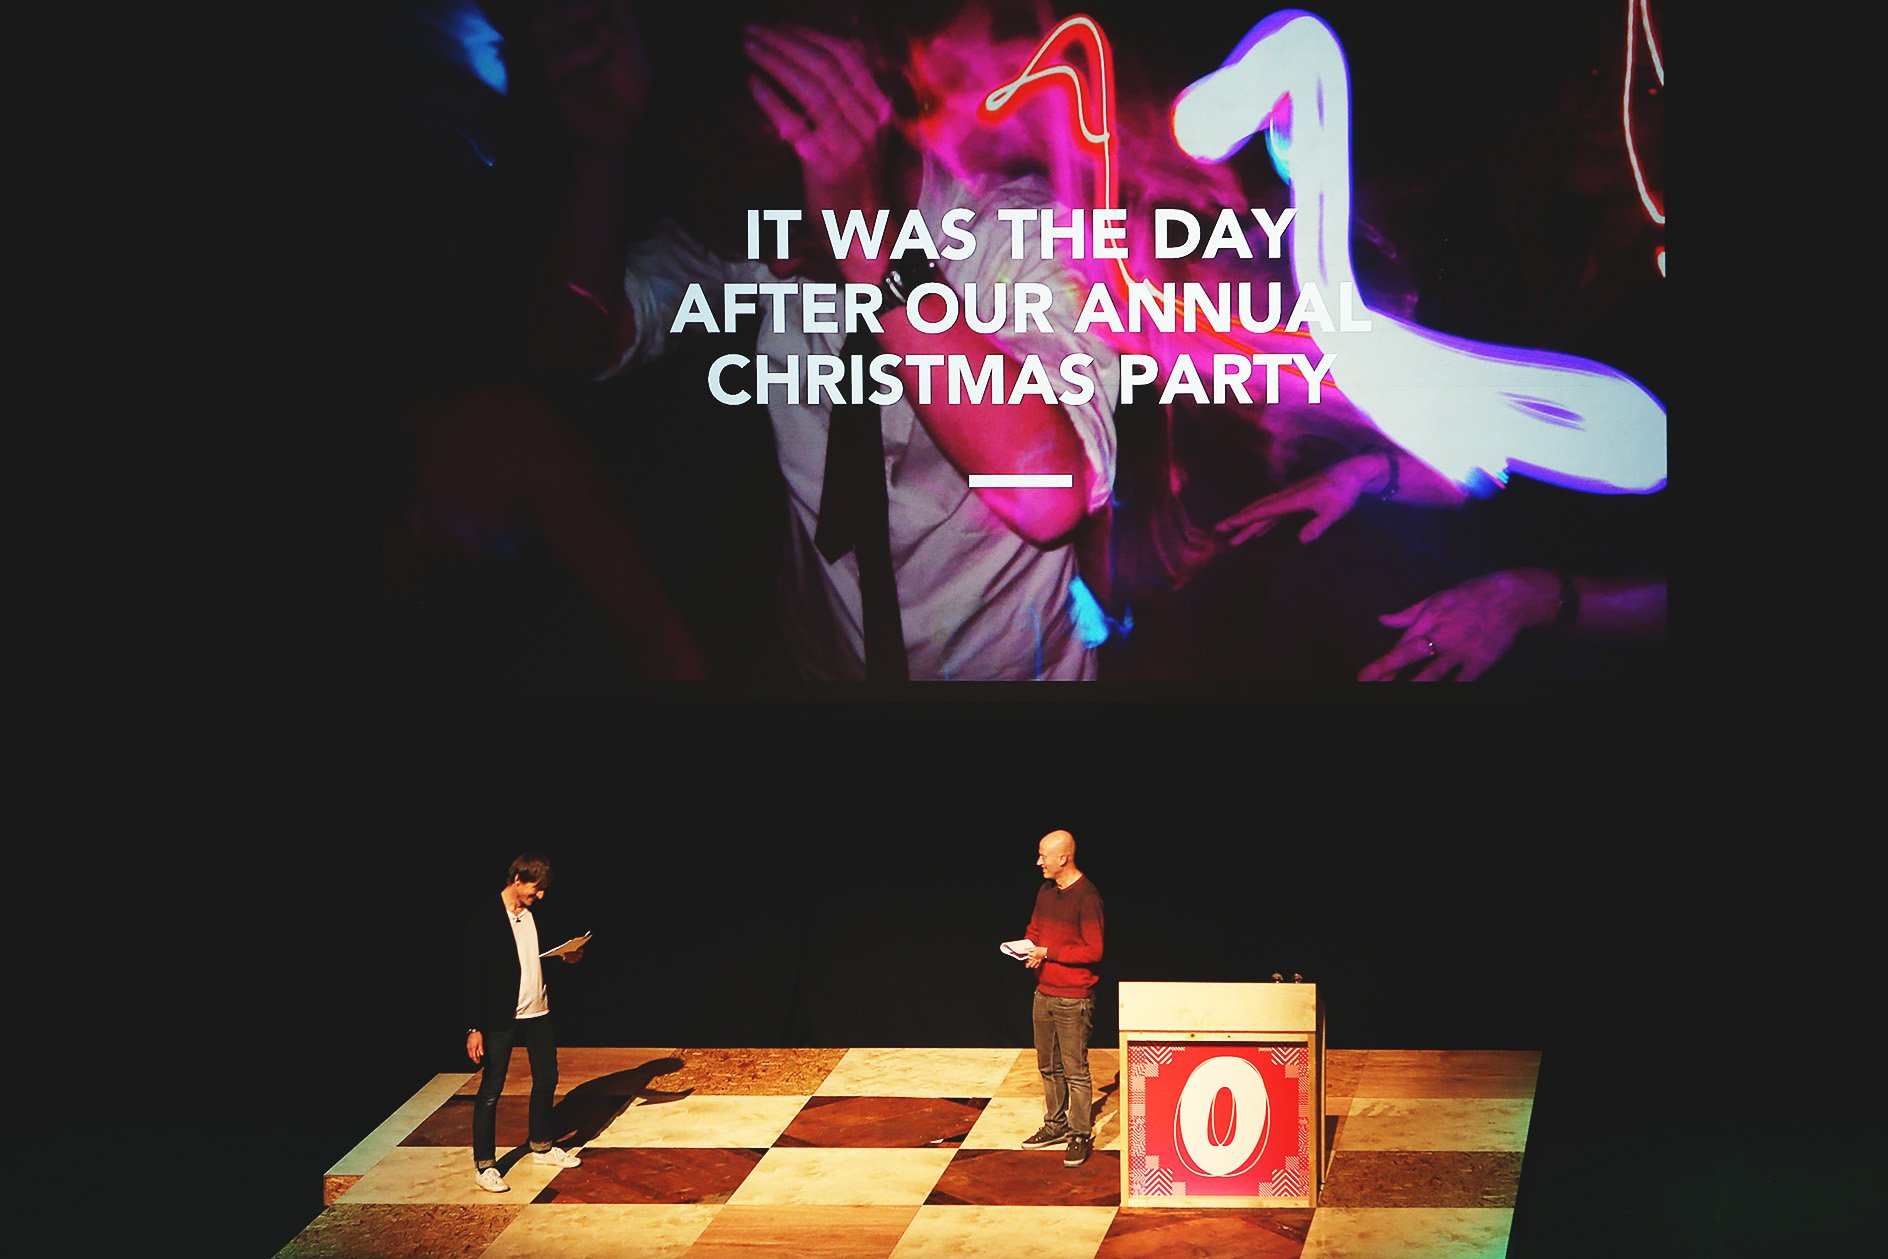 Forsman & Bodenfors at OFFSET 2015 - After The Christmas Party